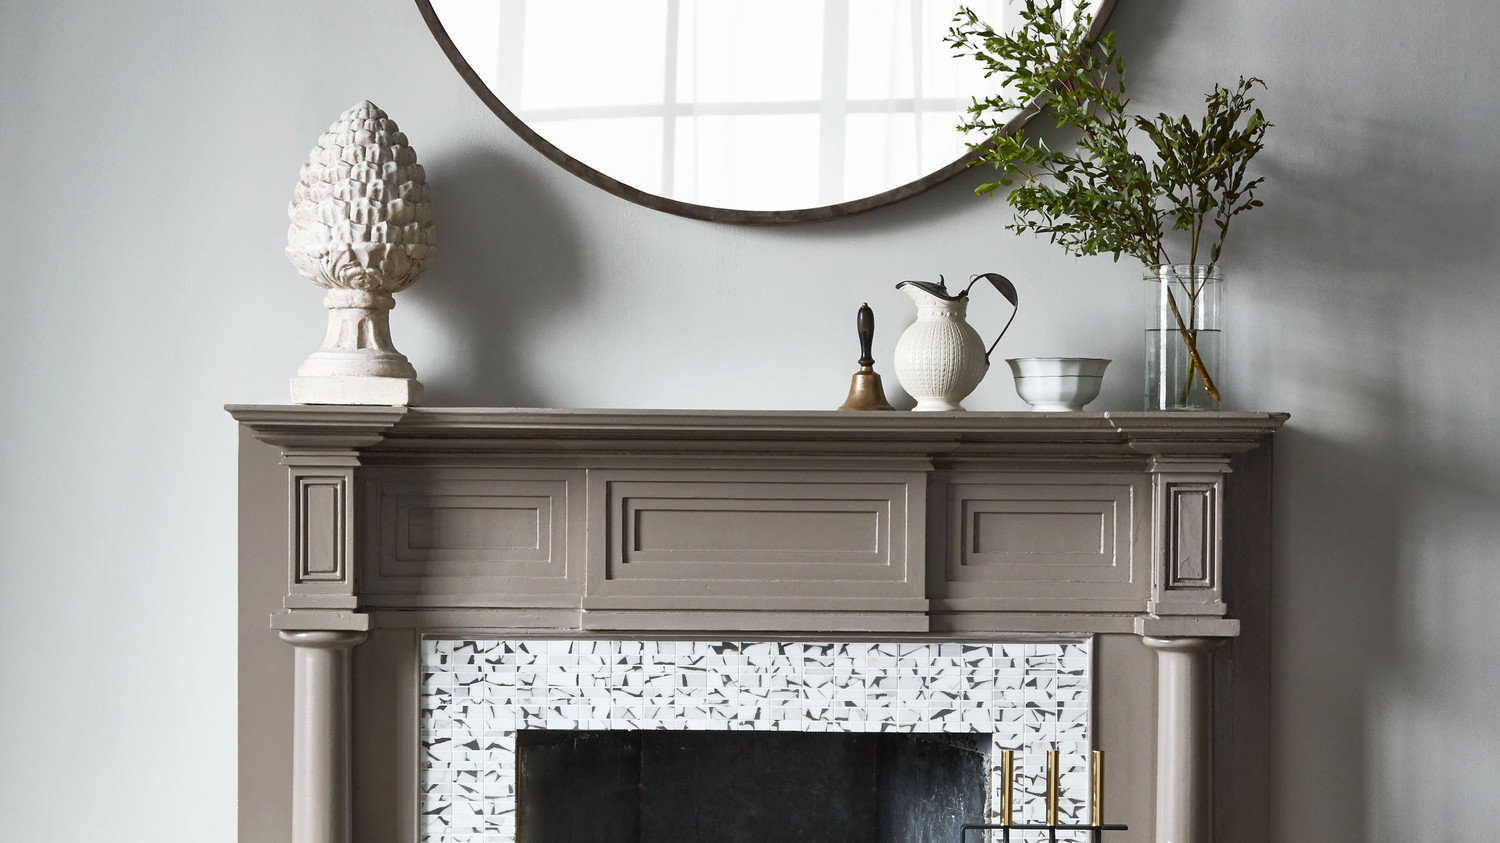 15 Chic, Cozy Fireplace Decorating Ideas